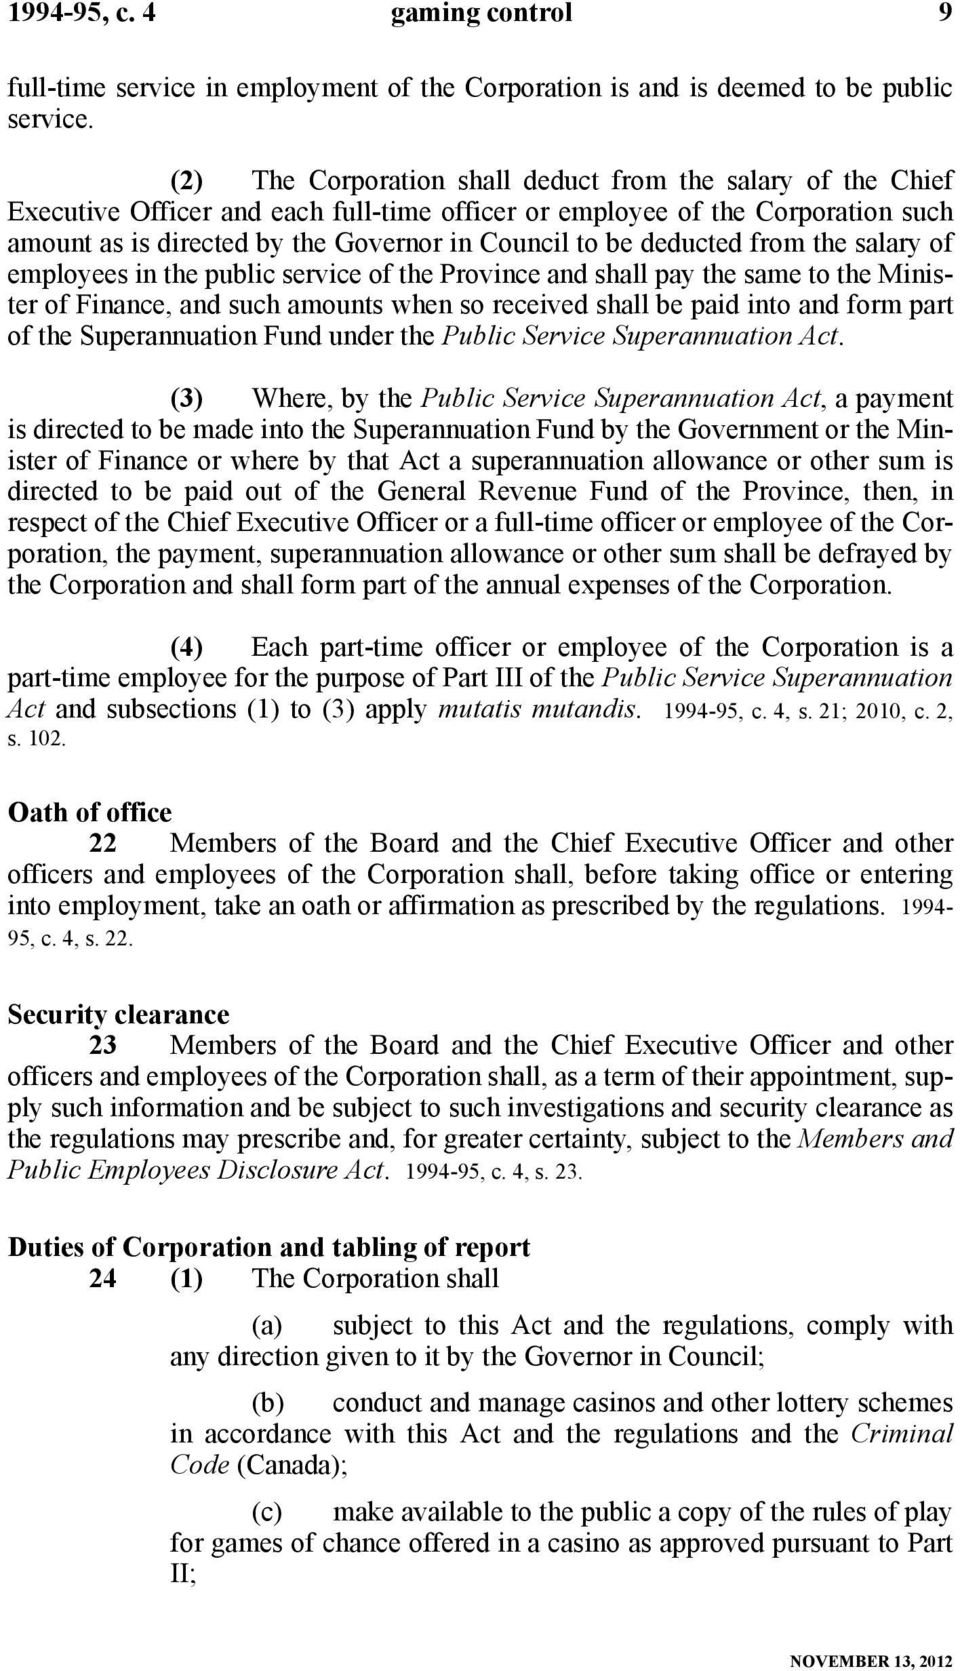 deducted from the salary of employees in the public service of the Province and shall pay the same to the Minister of Finance, and such amounts when so received shall be paid into and form part of